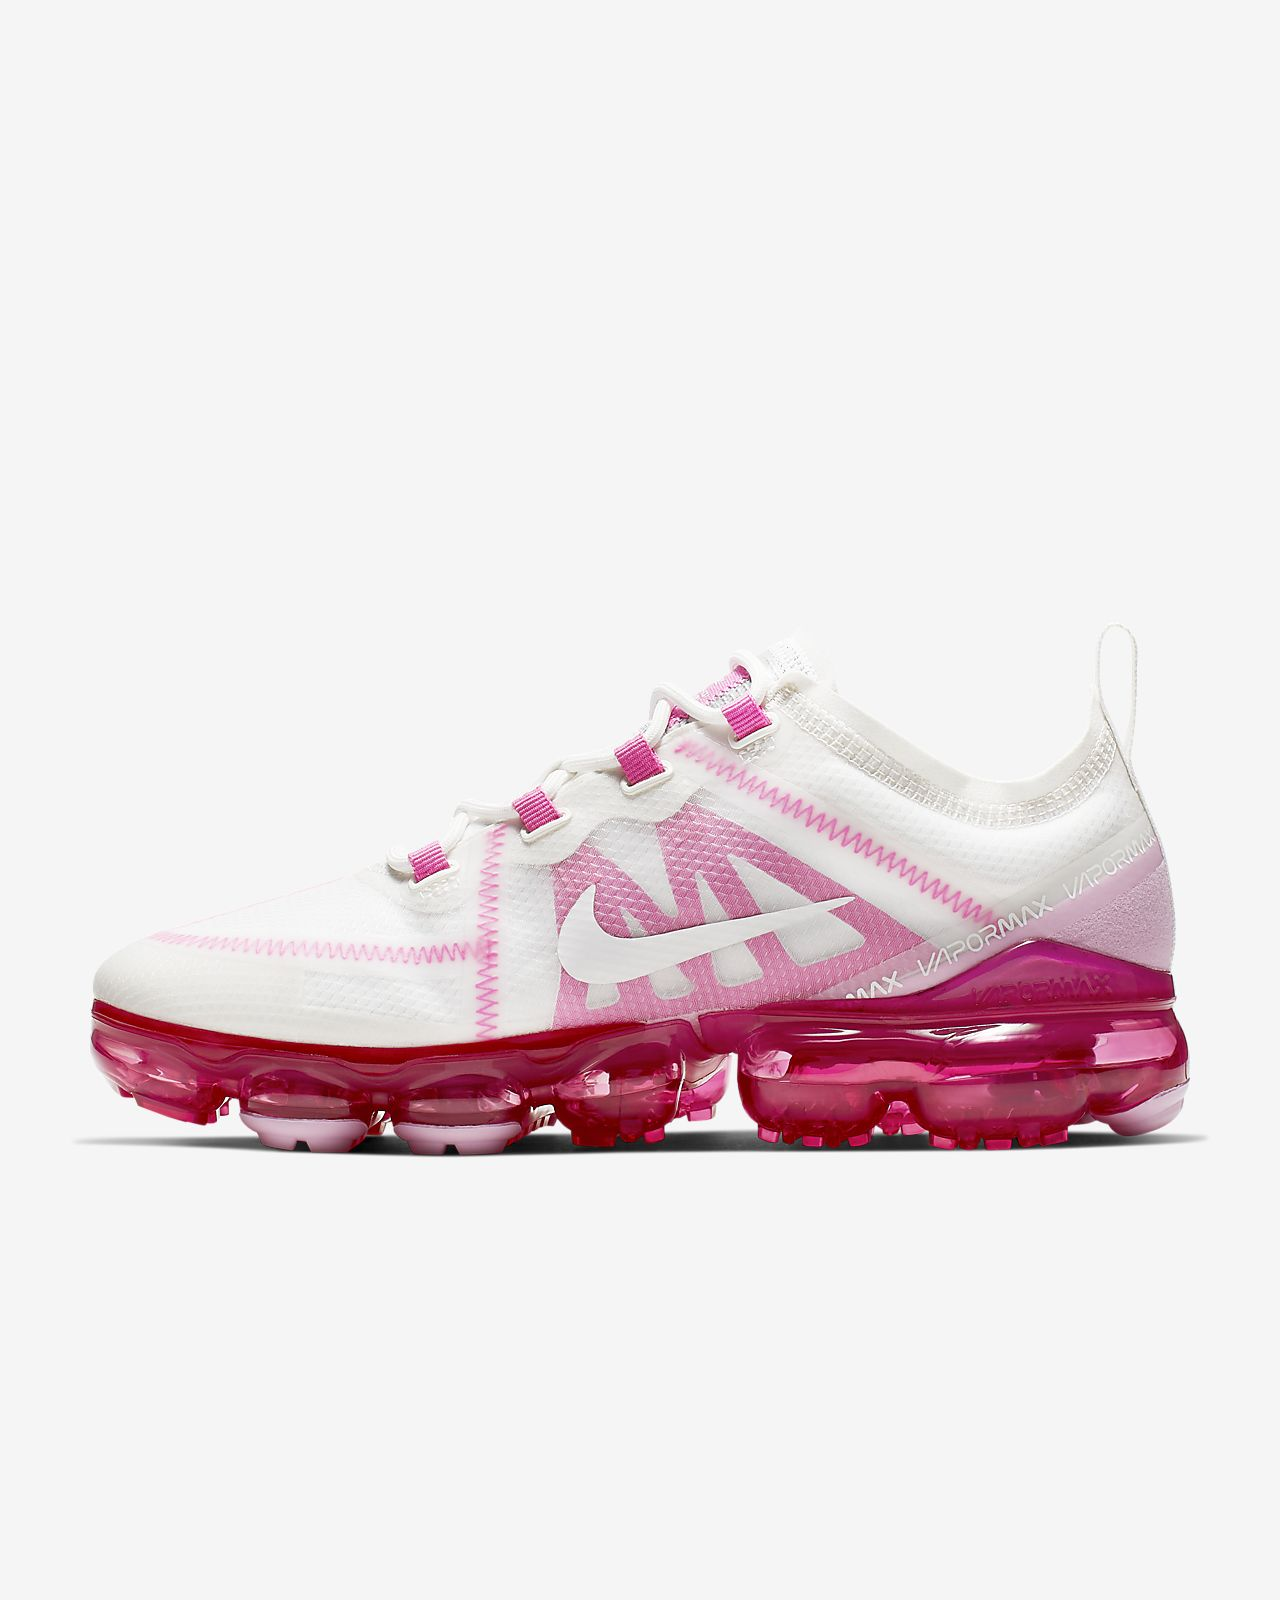 huge selection of 51496 1bc33 ... low resolution nike air vapormax 2019 damenschuh nike air vapormax 2019  damenschuh